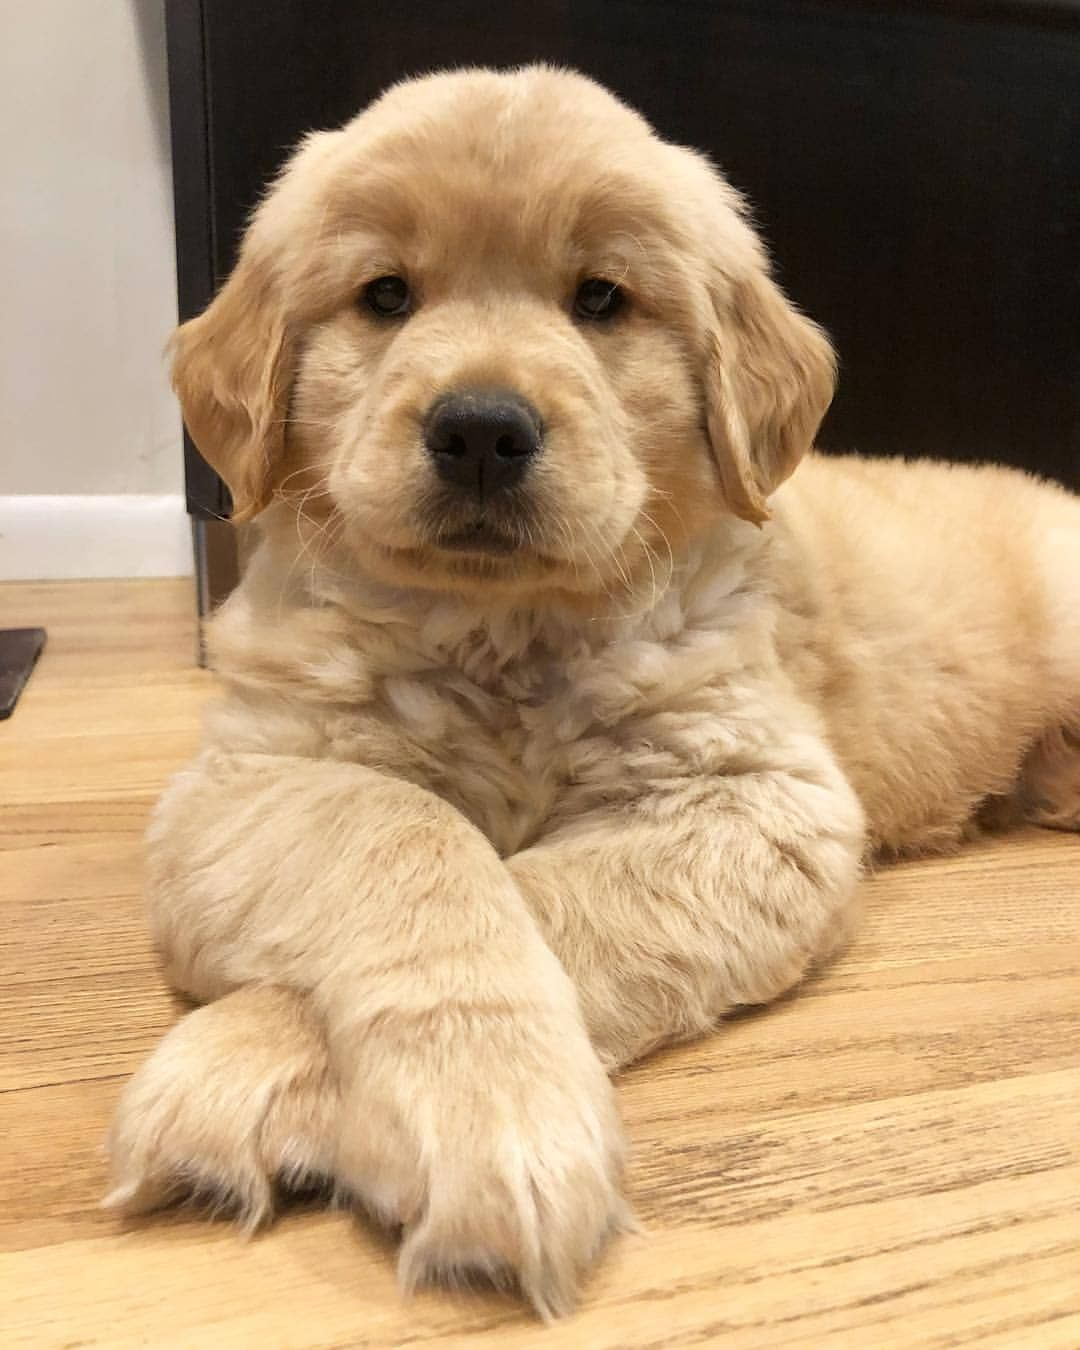 What Wud You Name Him Themgoldenboys Goldenretriever Goldenretrieverpuppy Cute Lab Puppies Very Cute Dogs Cute Dogs